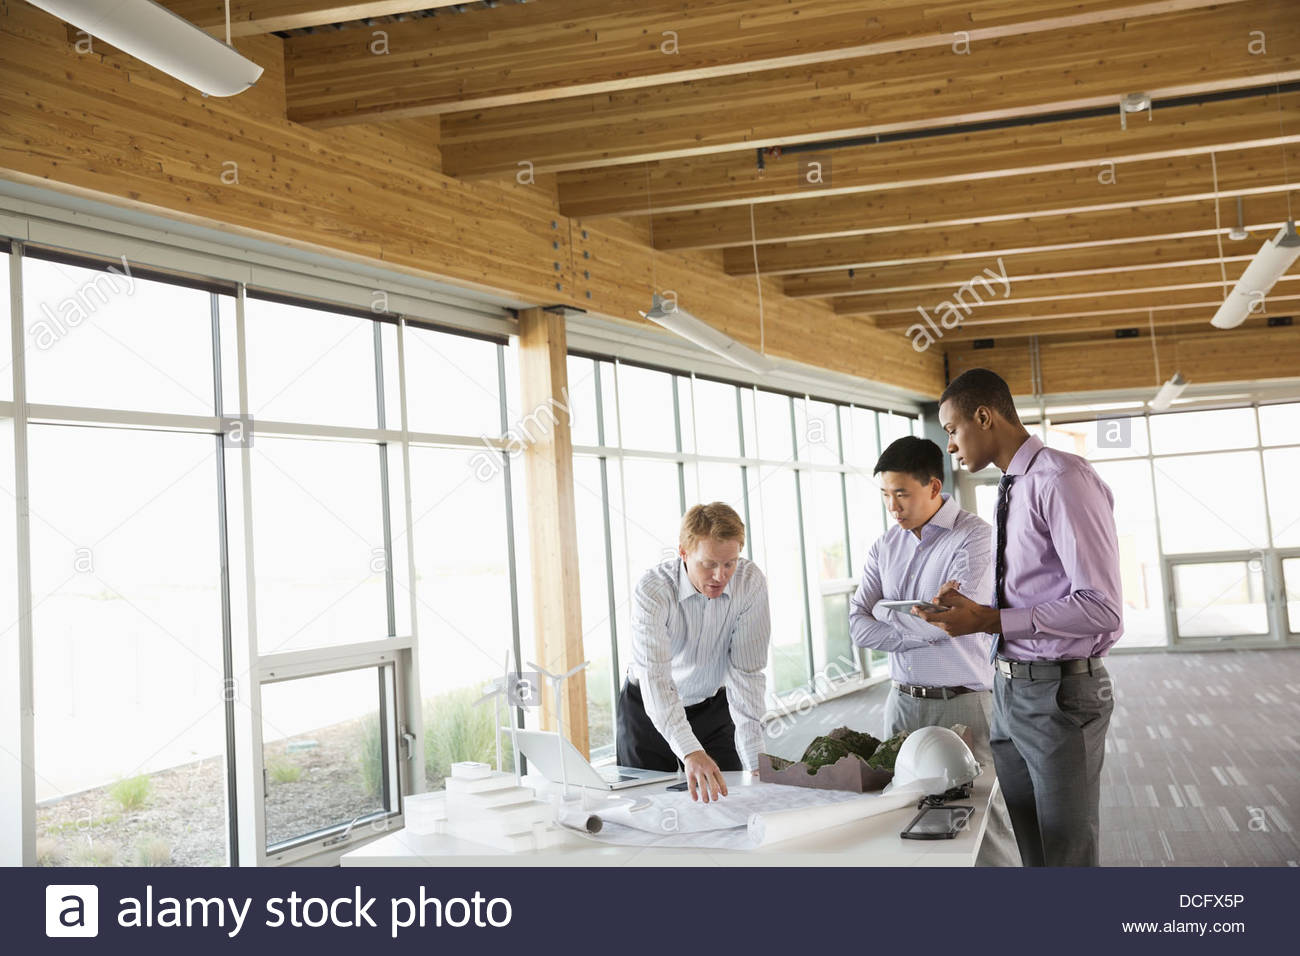 Engineer explaining blueprints to colleagues - Stock Image